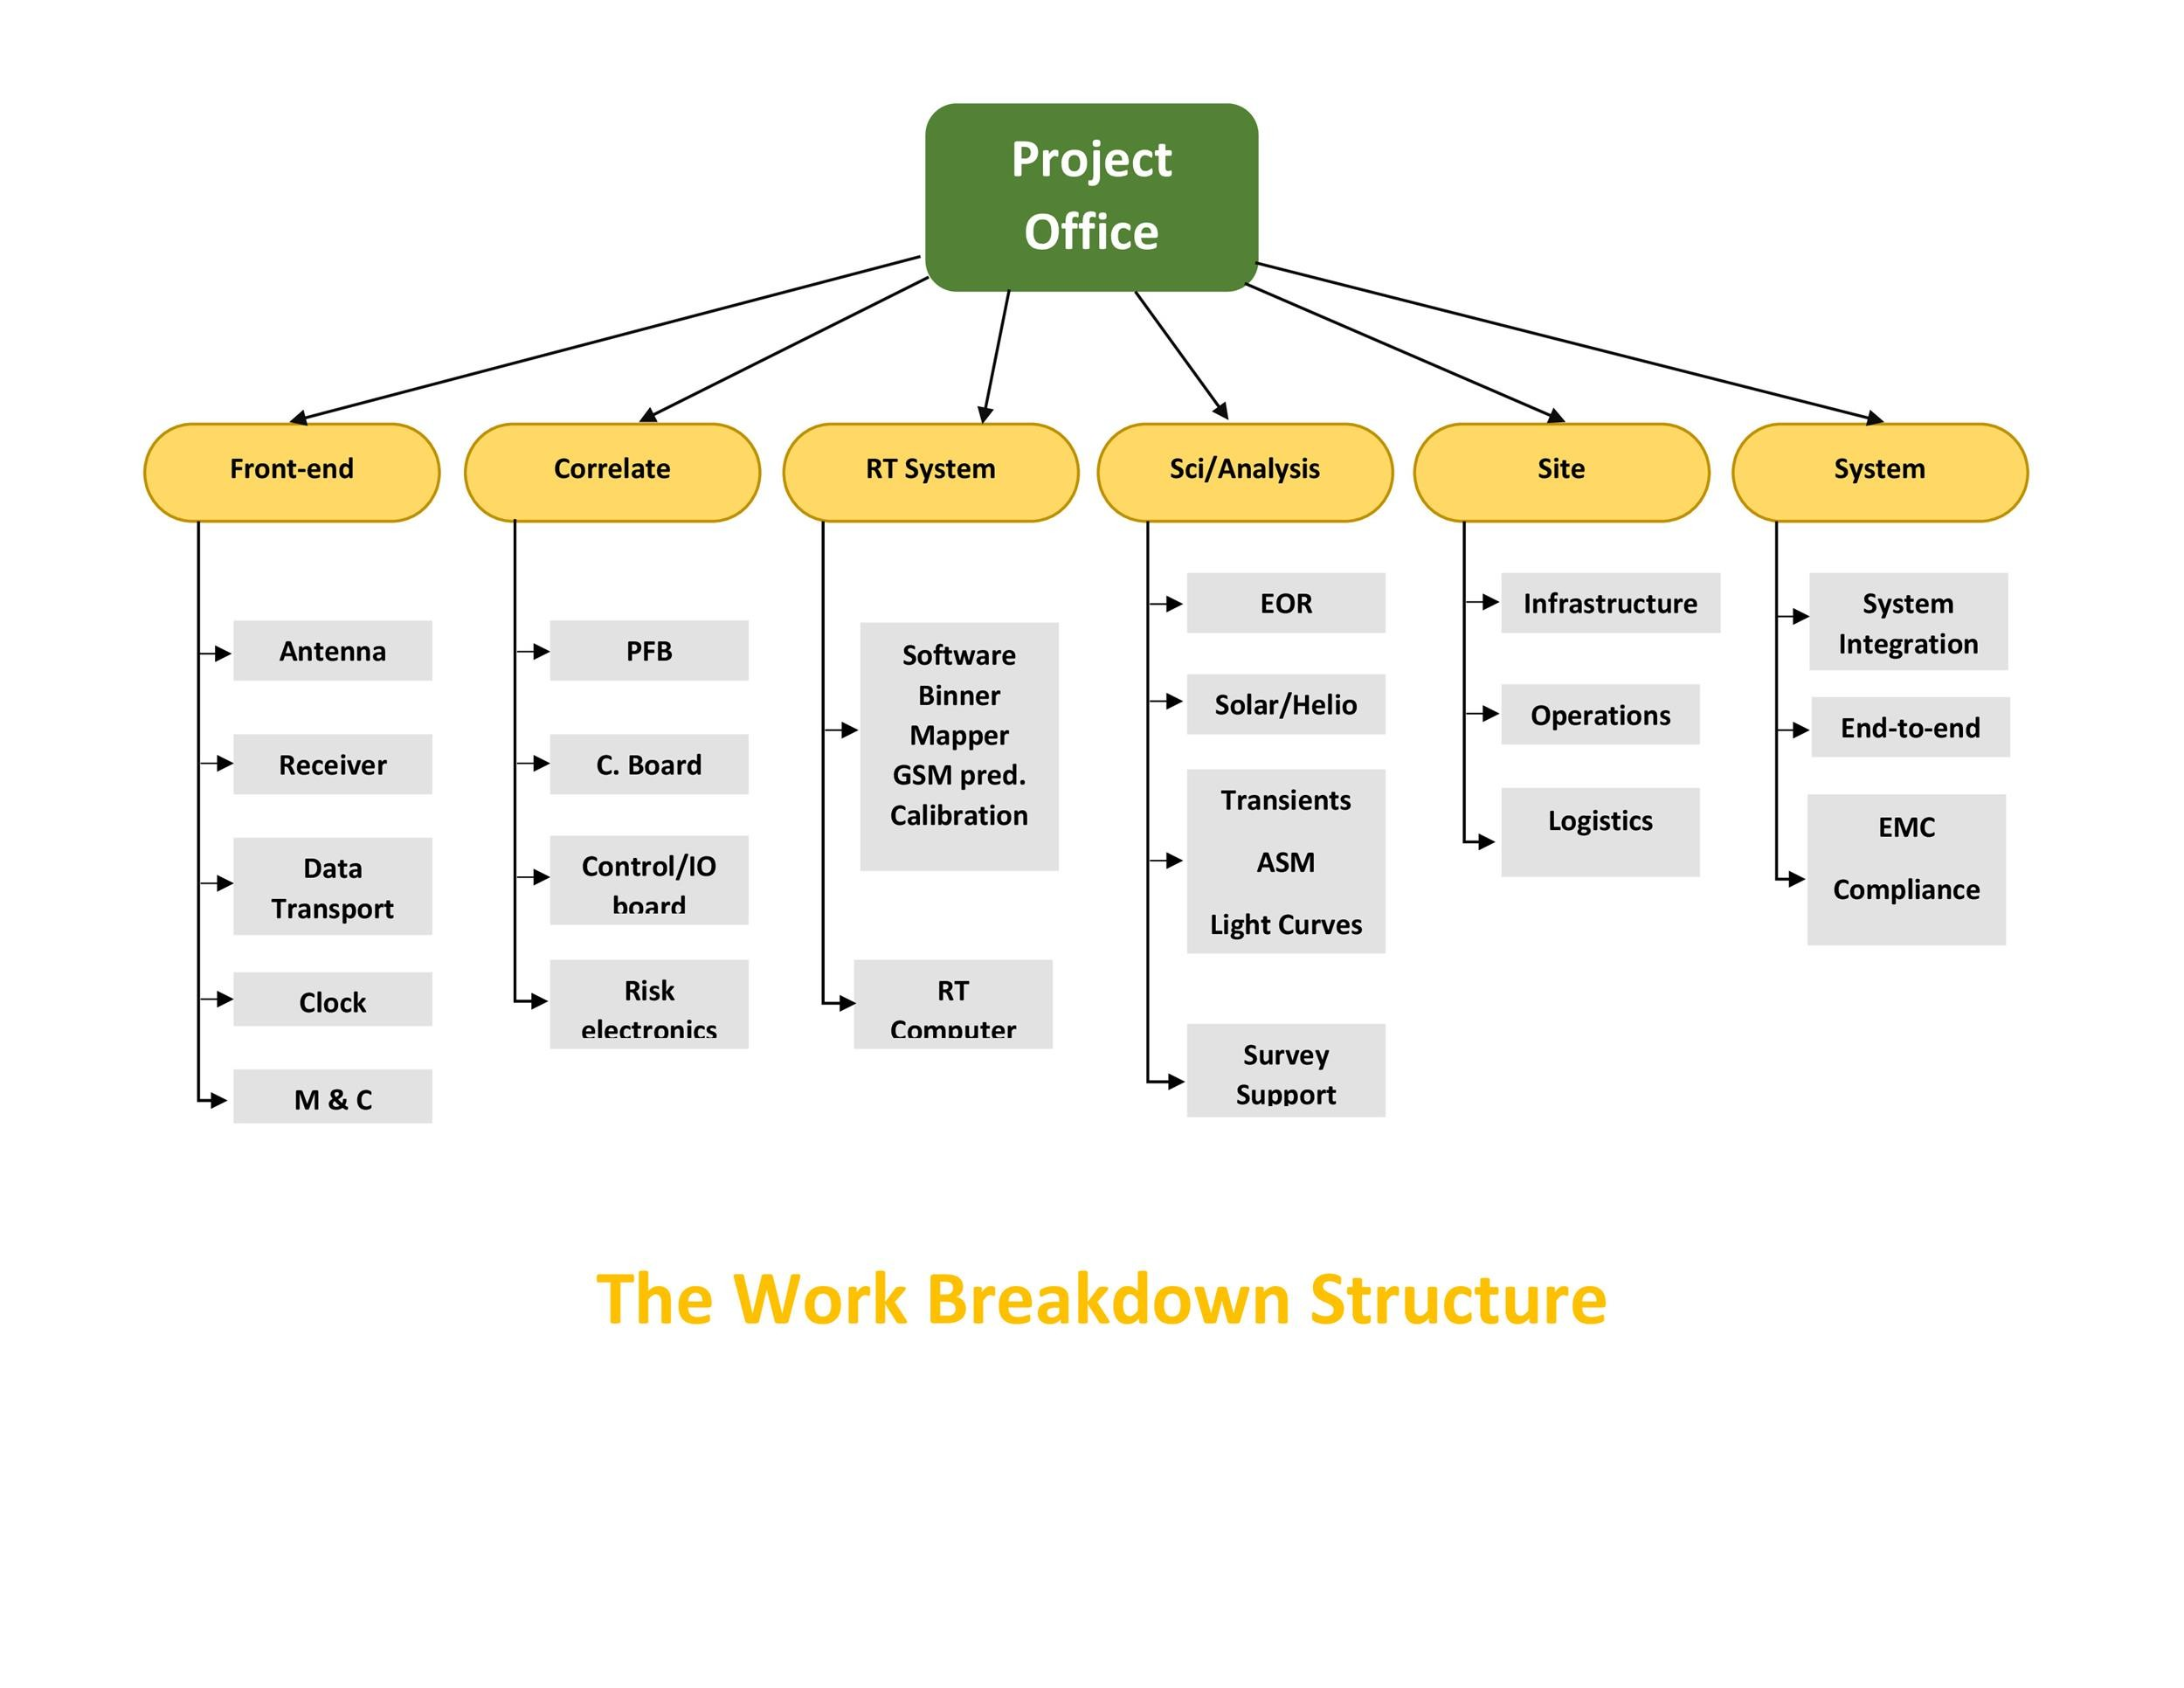 30 work breakdown structure templates free template lab for Product breakdown structure excel template